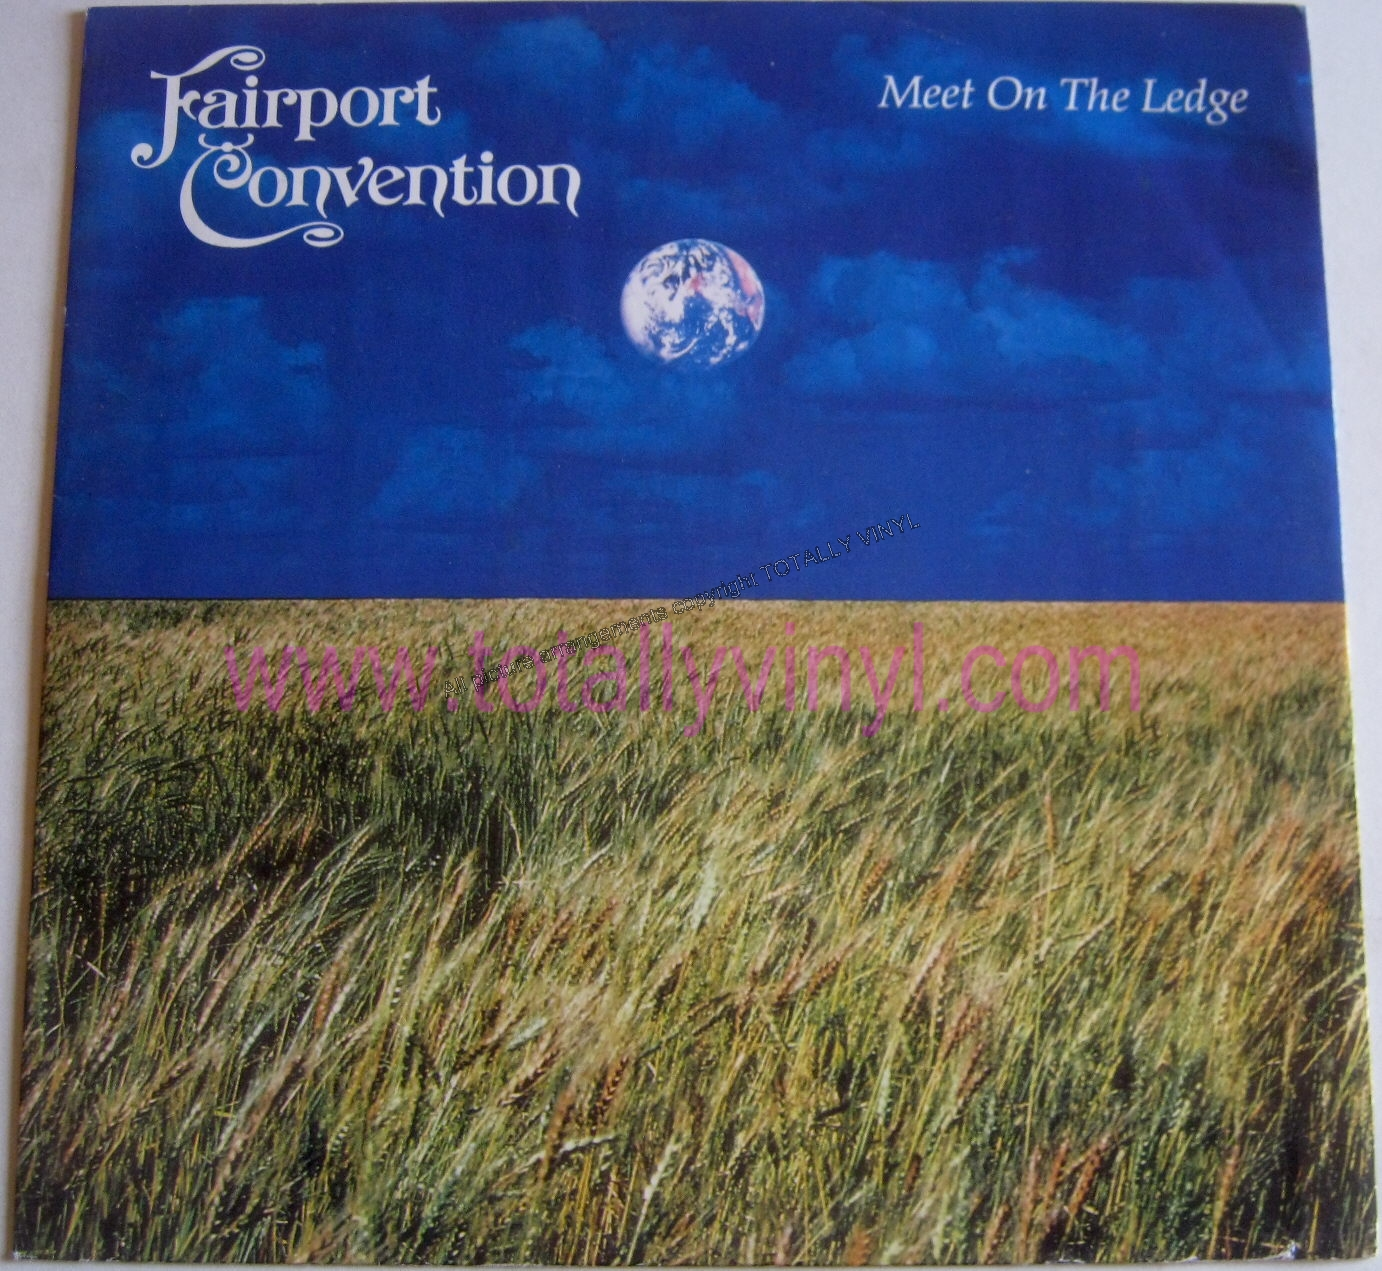 meet me on the ledge by fairport convention